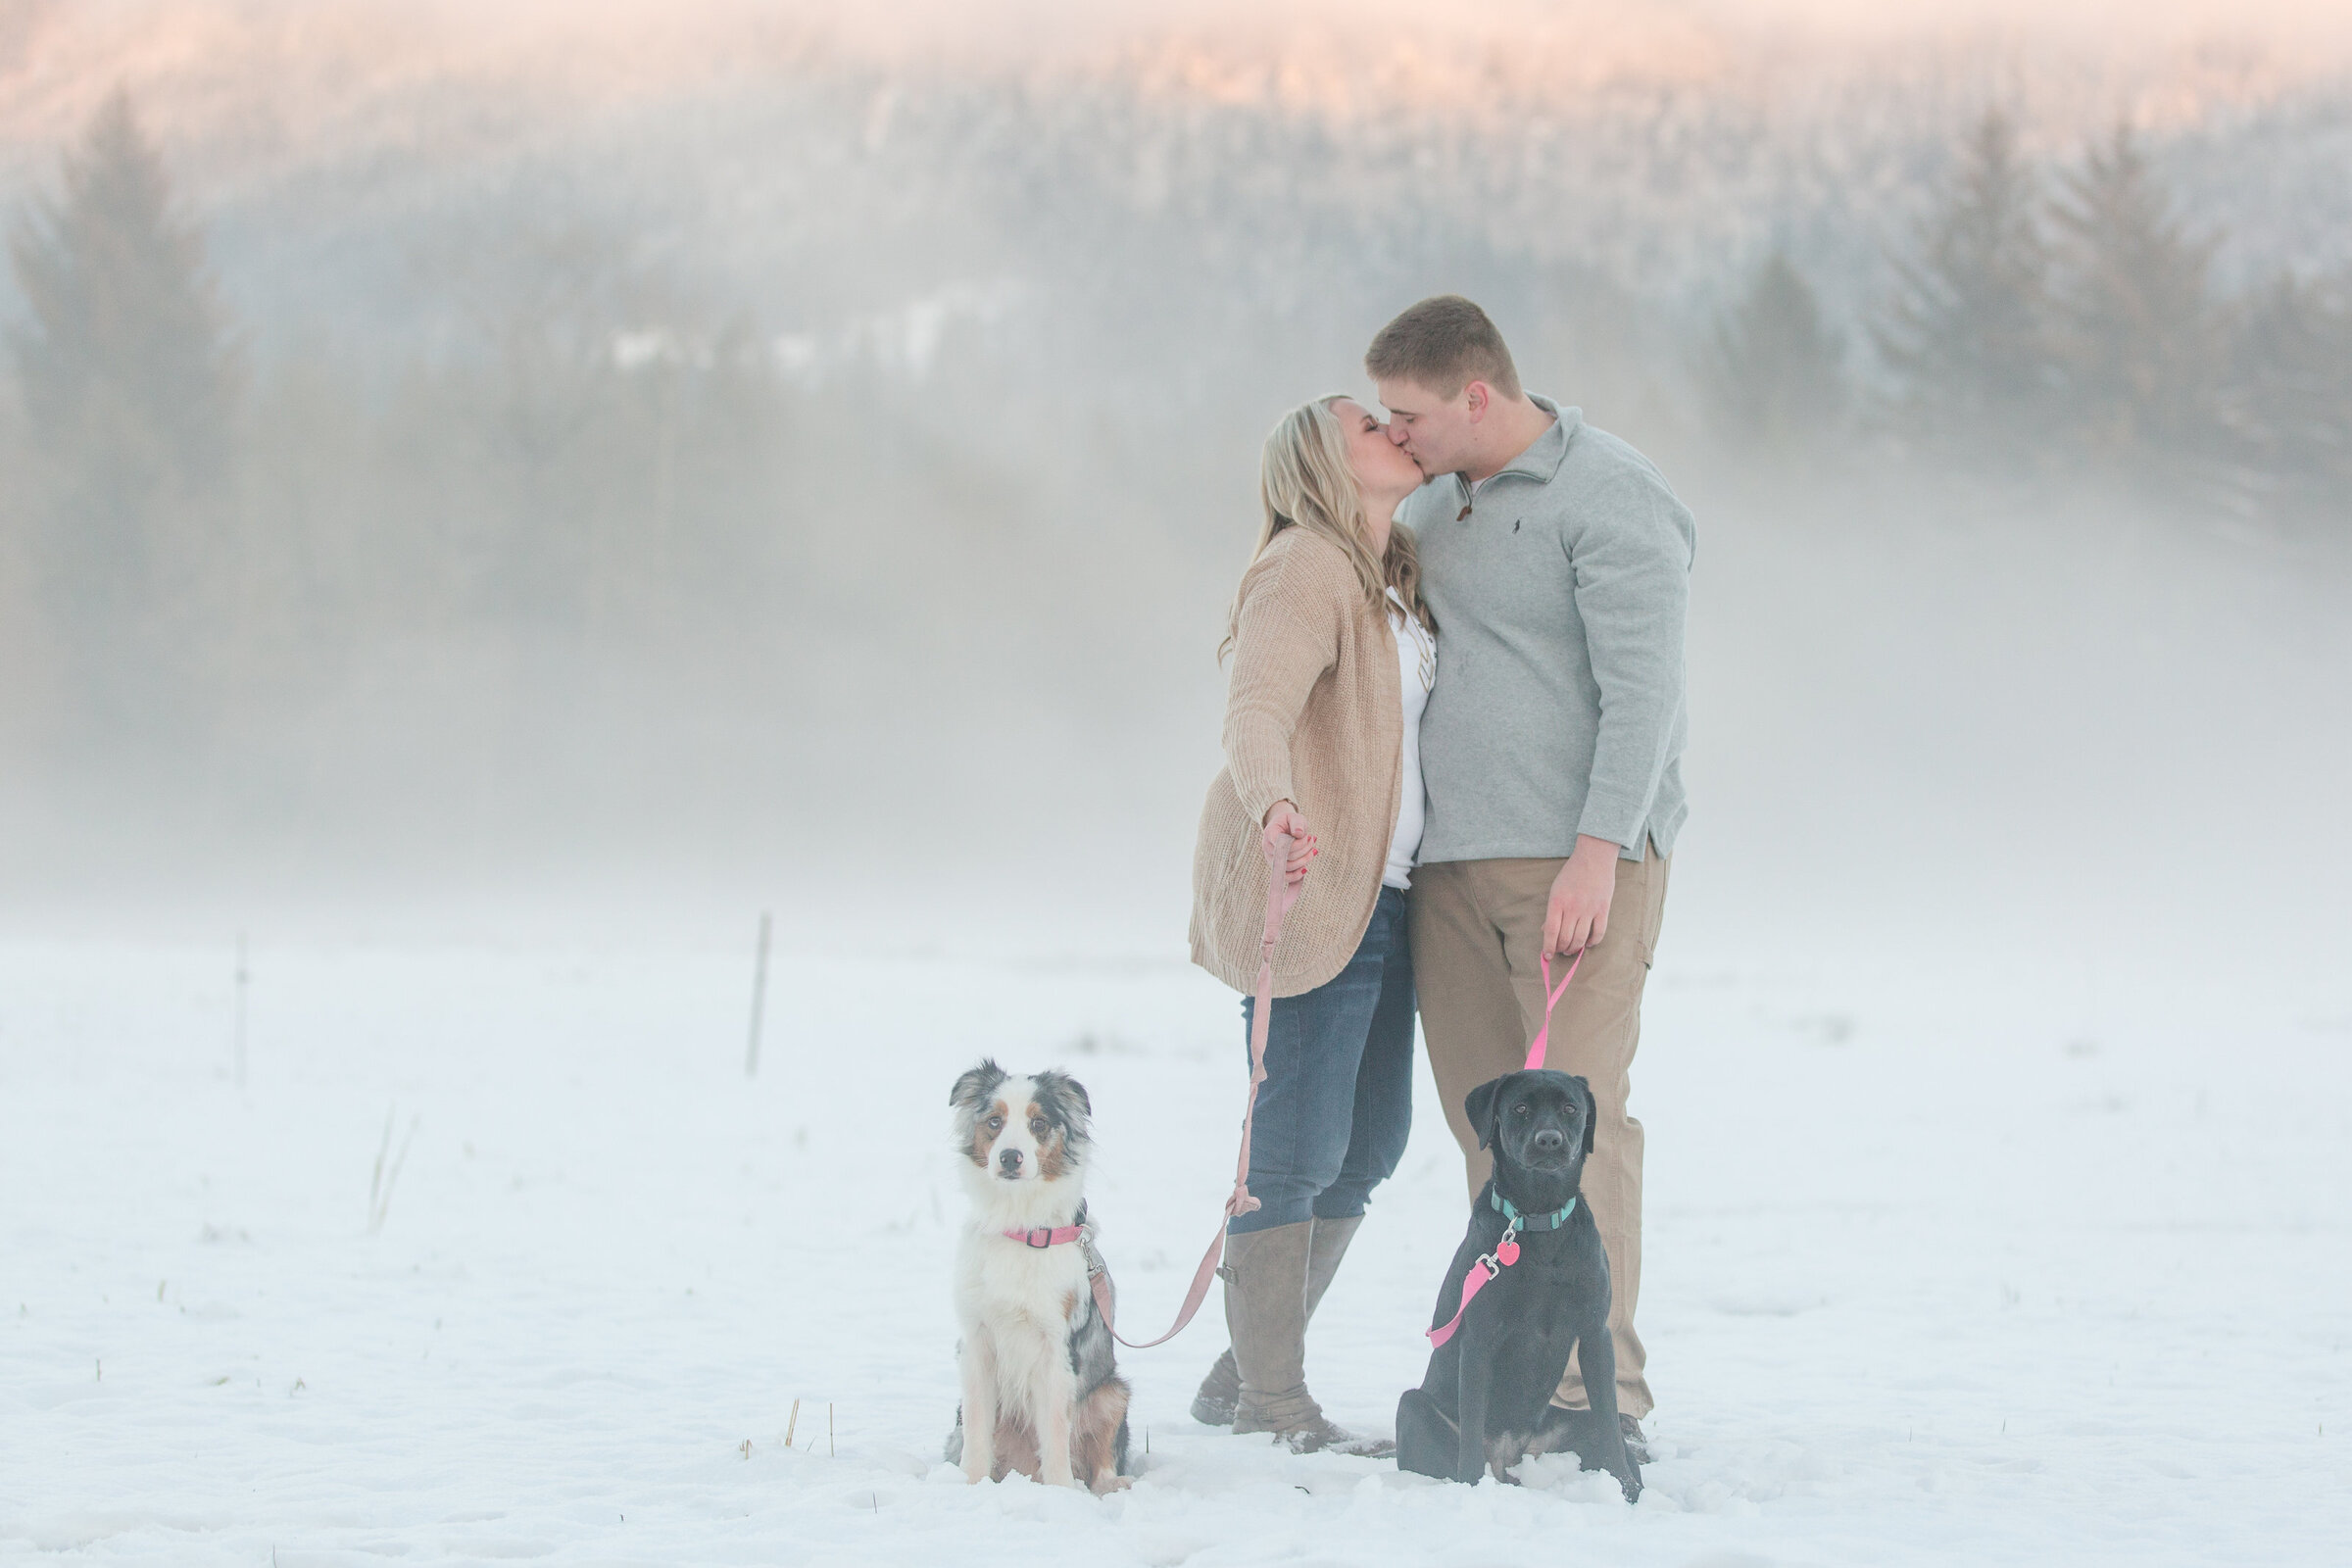 bellingham engagement photographers skagit valley engagement session snowy couple kissing